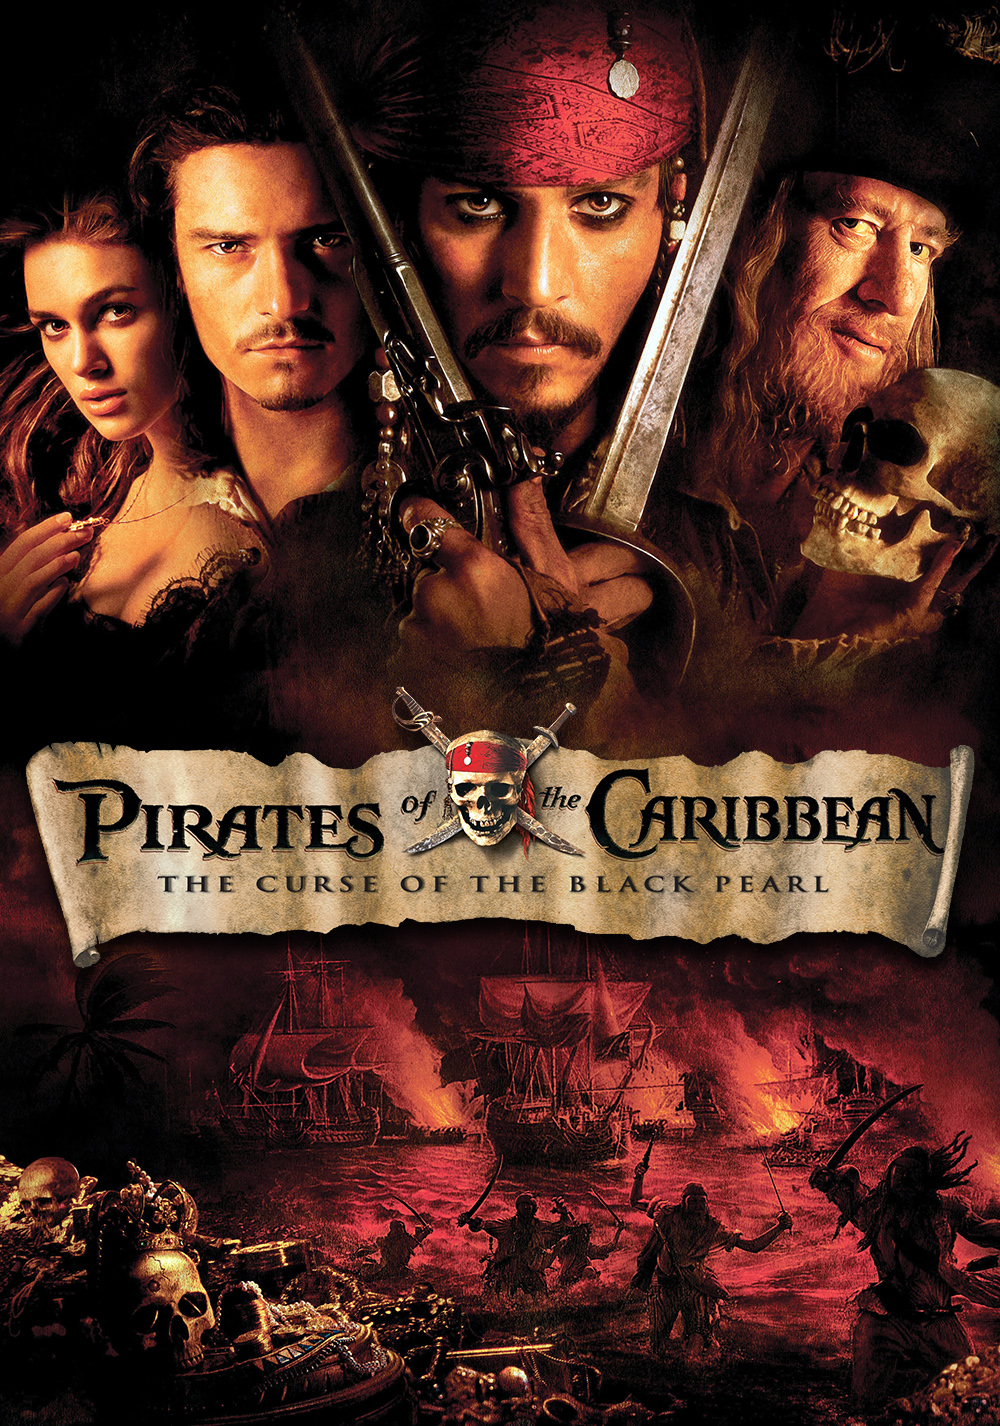 Pirates of the caribbeanporn naked movies